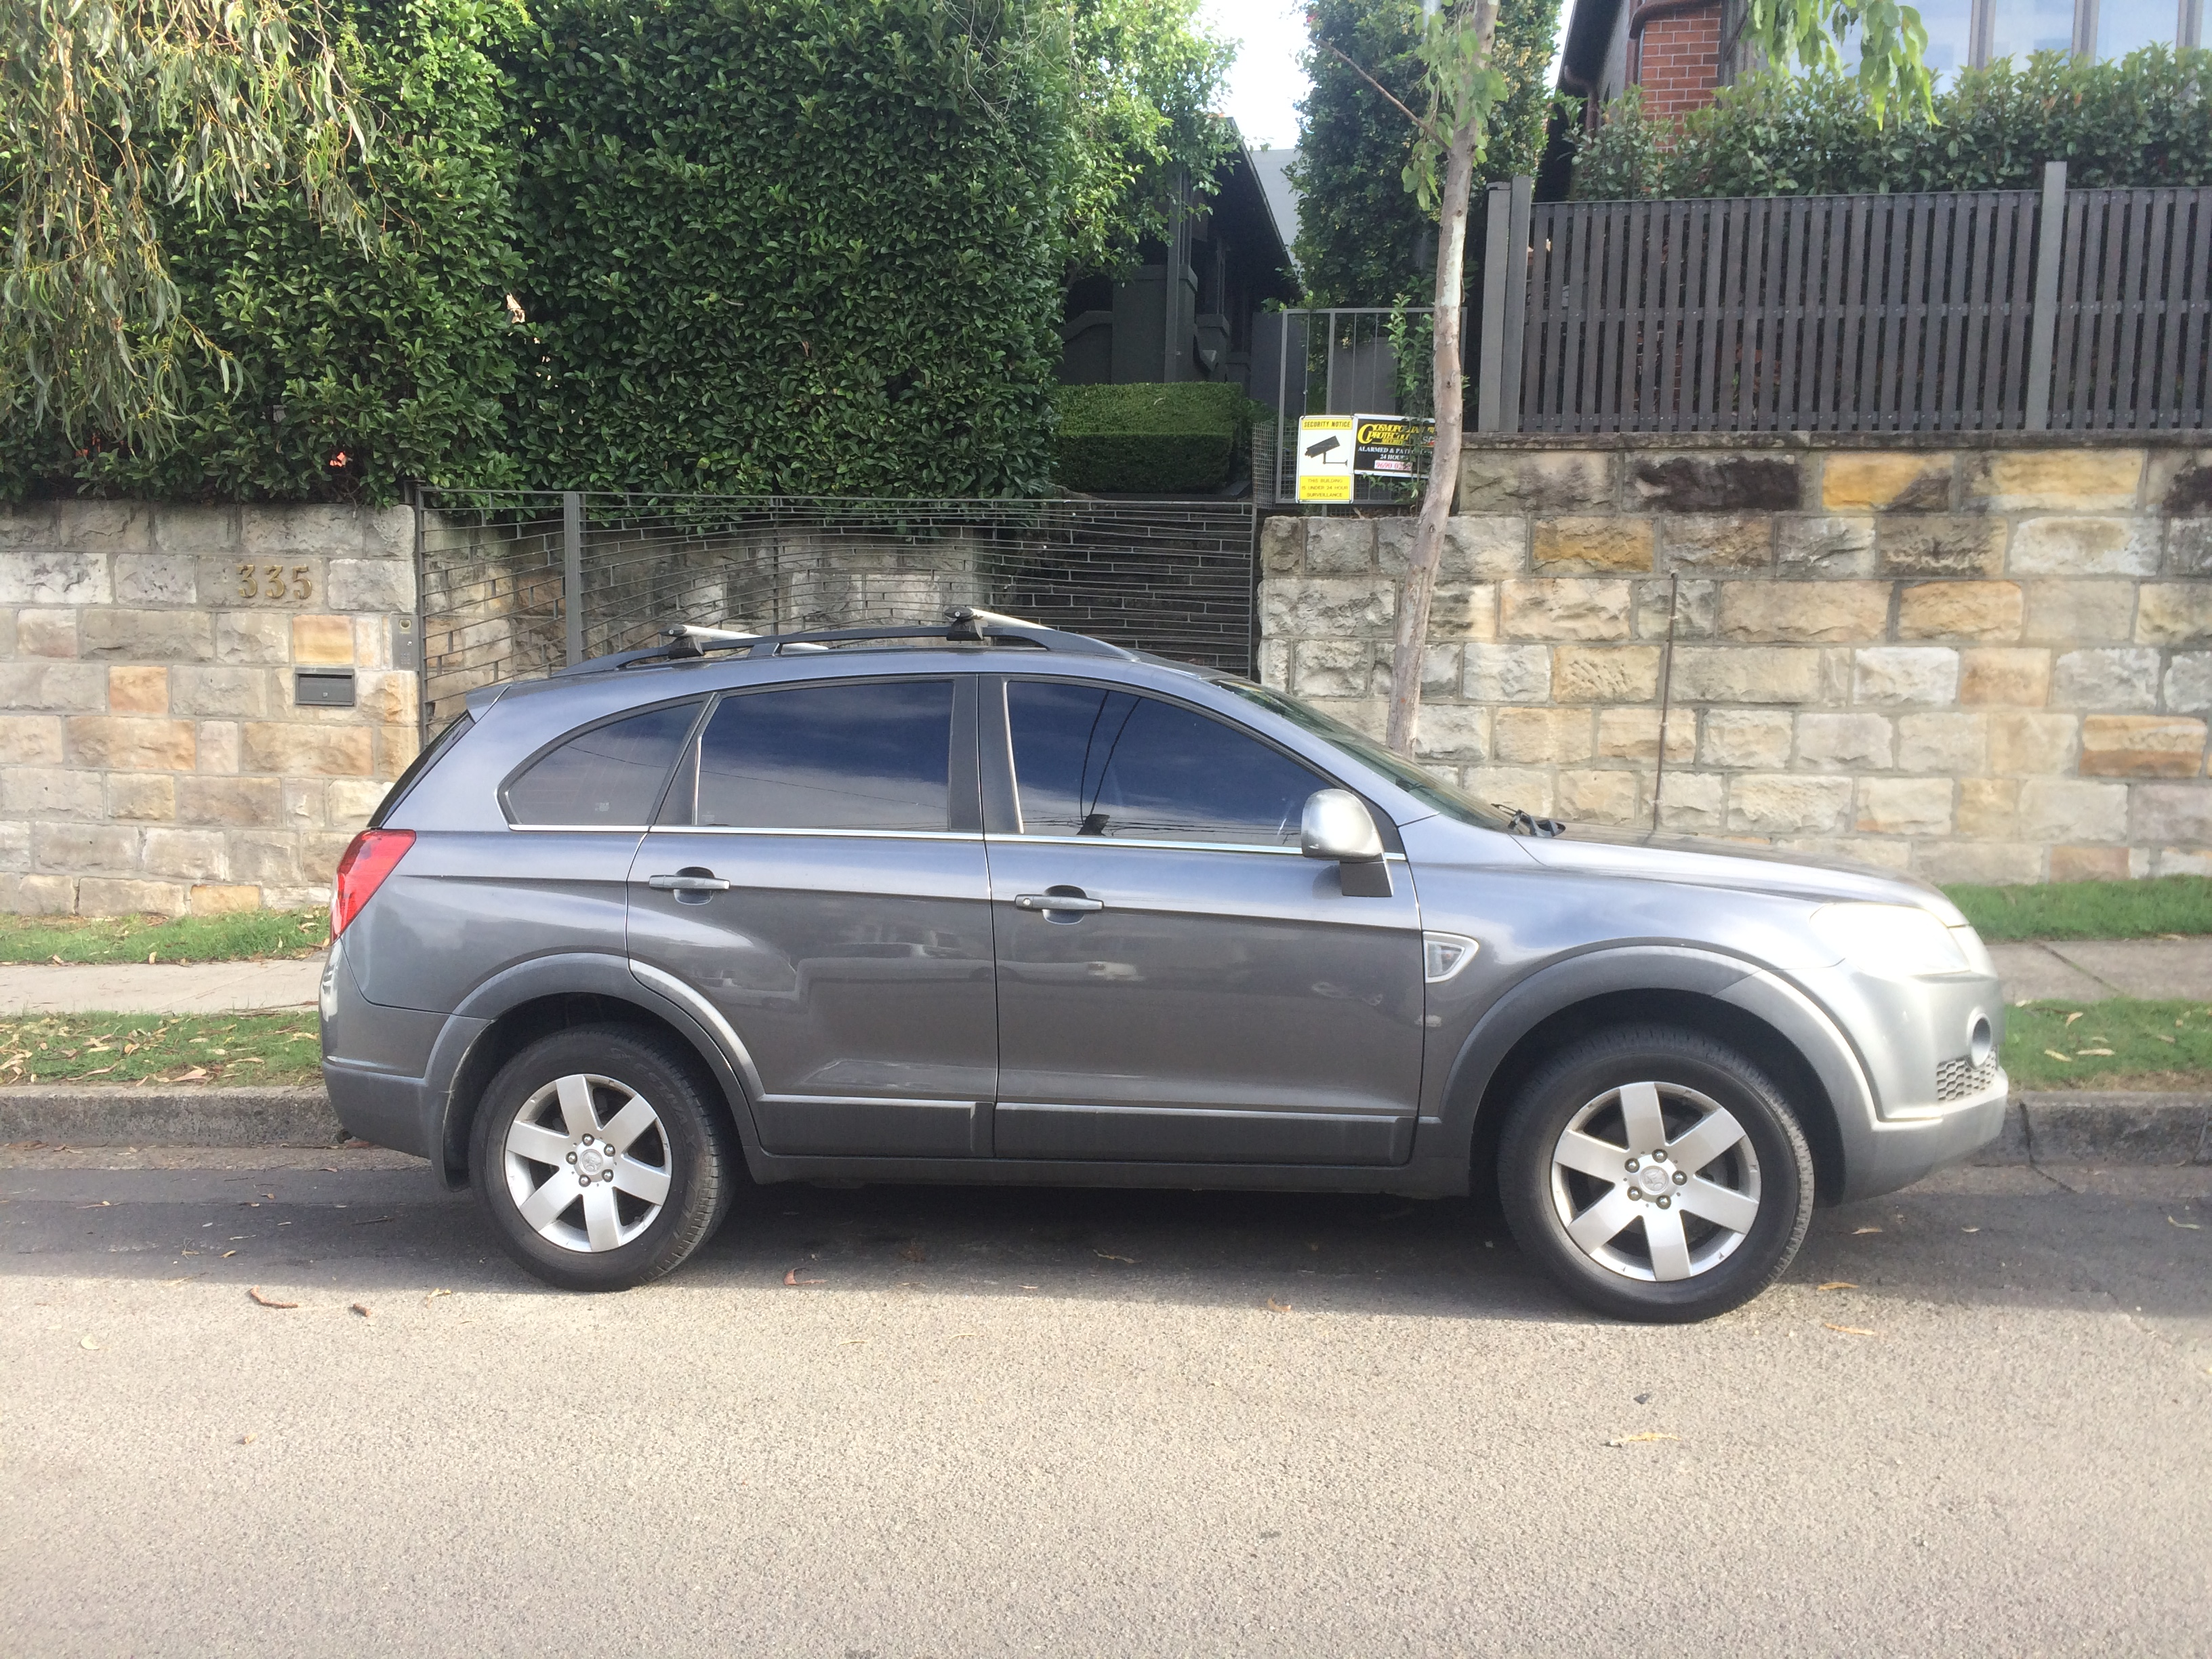 Rent John S 2008 Holden Captiva Cx 4x4 By The Hour Or